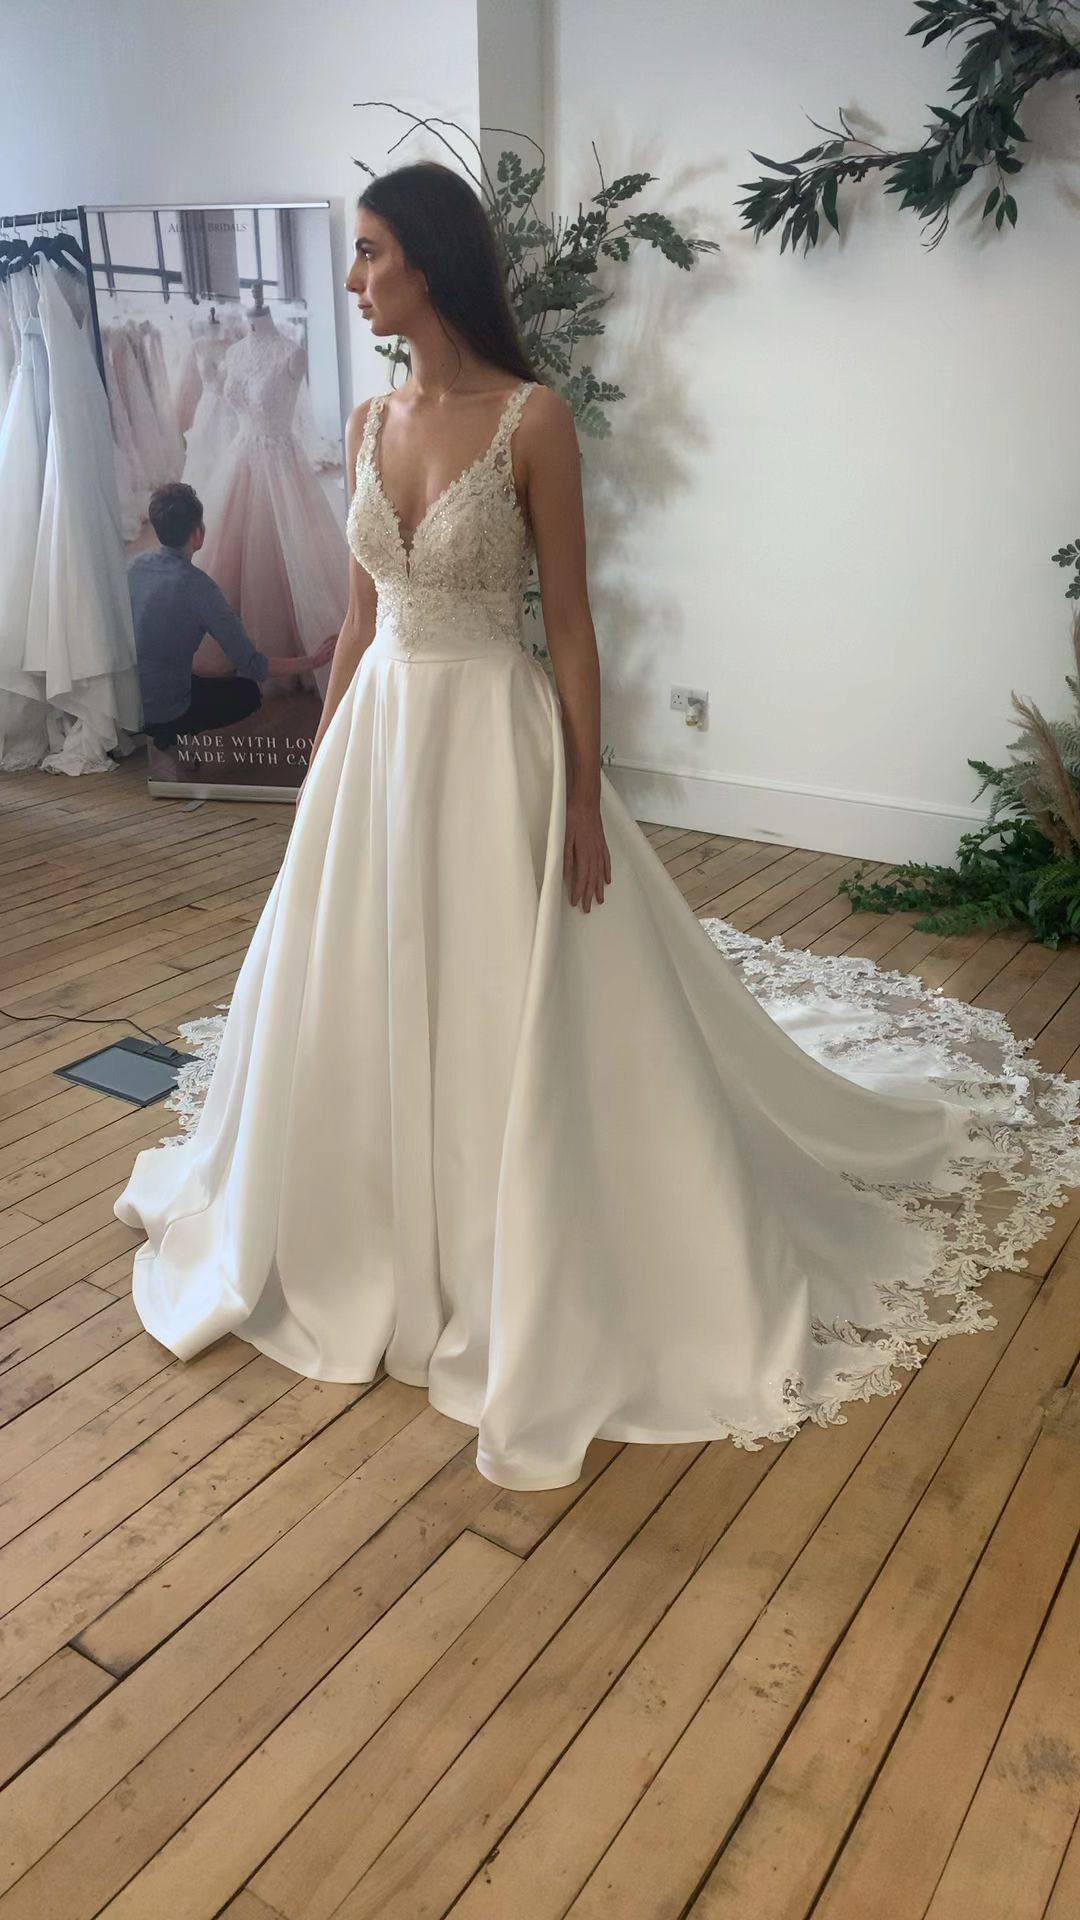 2020 Best Wedding Dress New Dress Wedding Centrepieces Married Dress